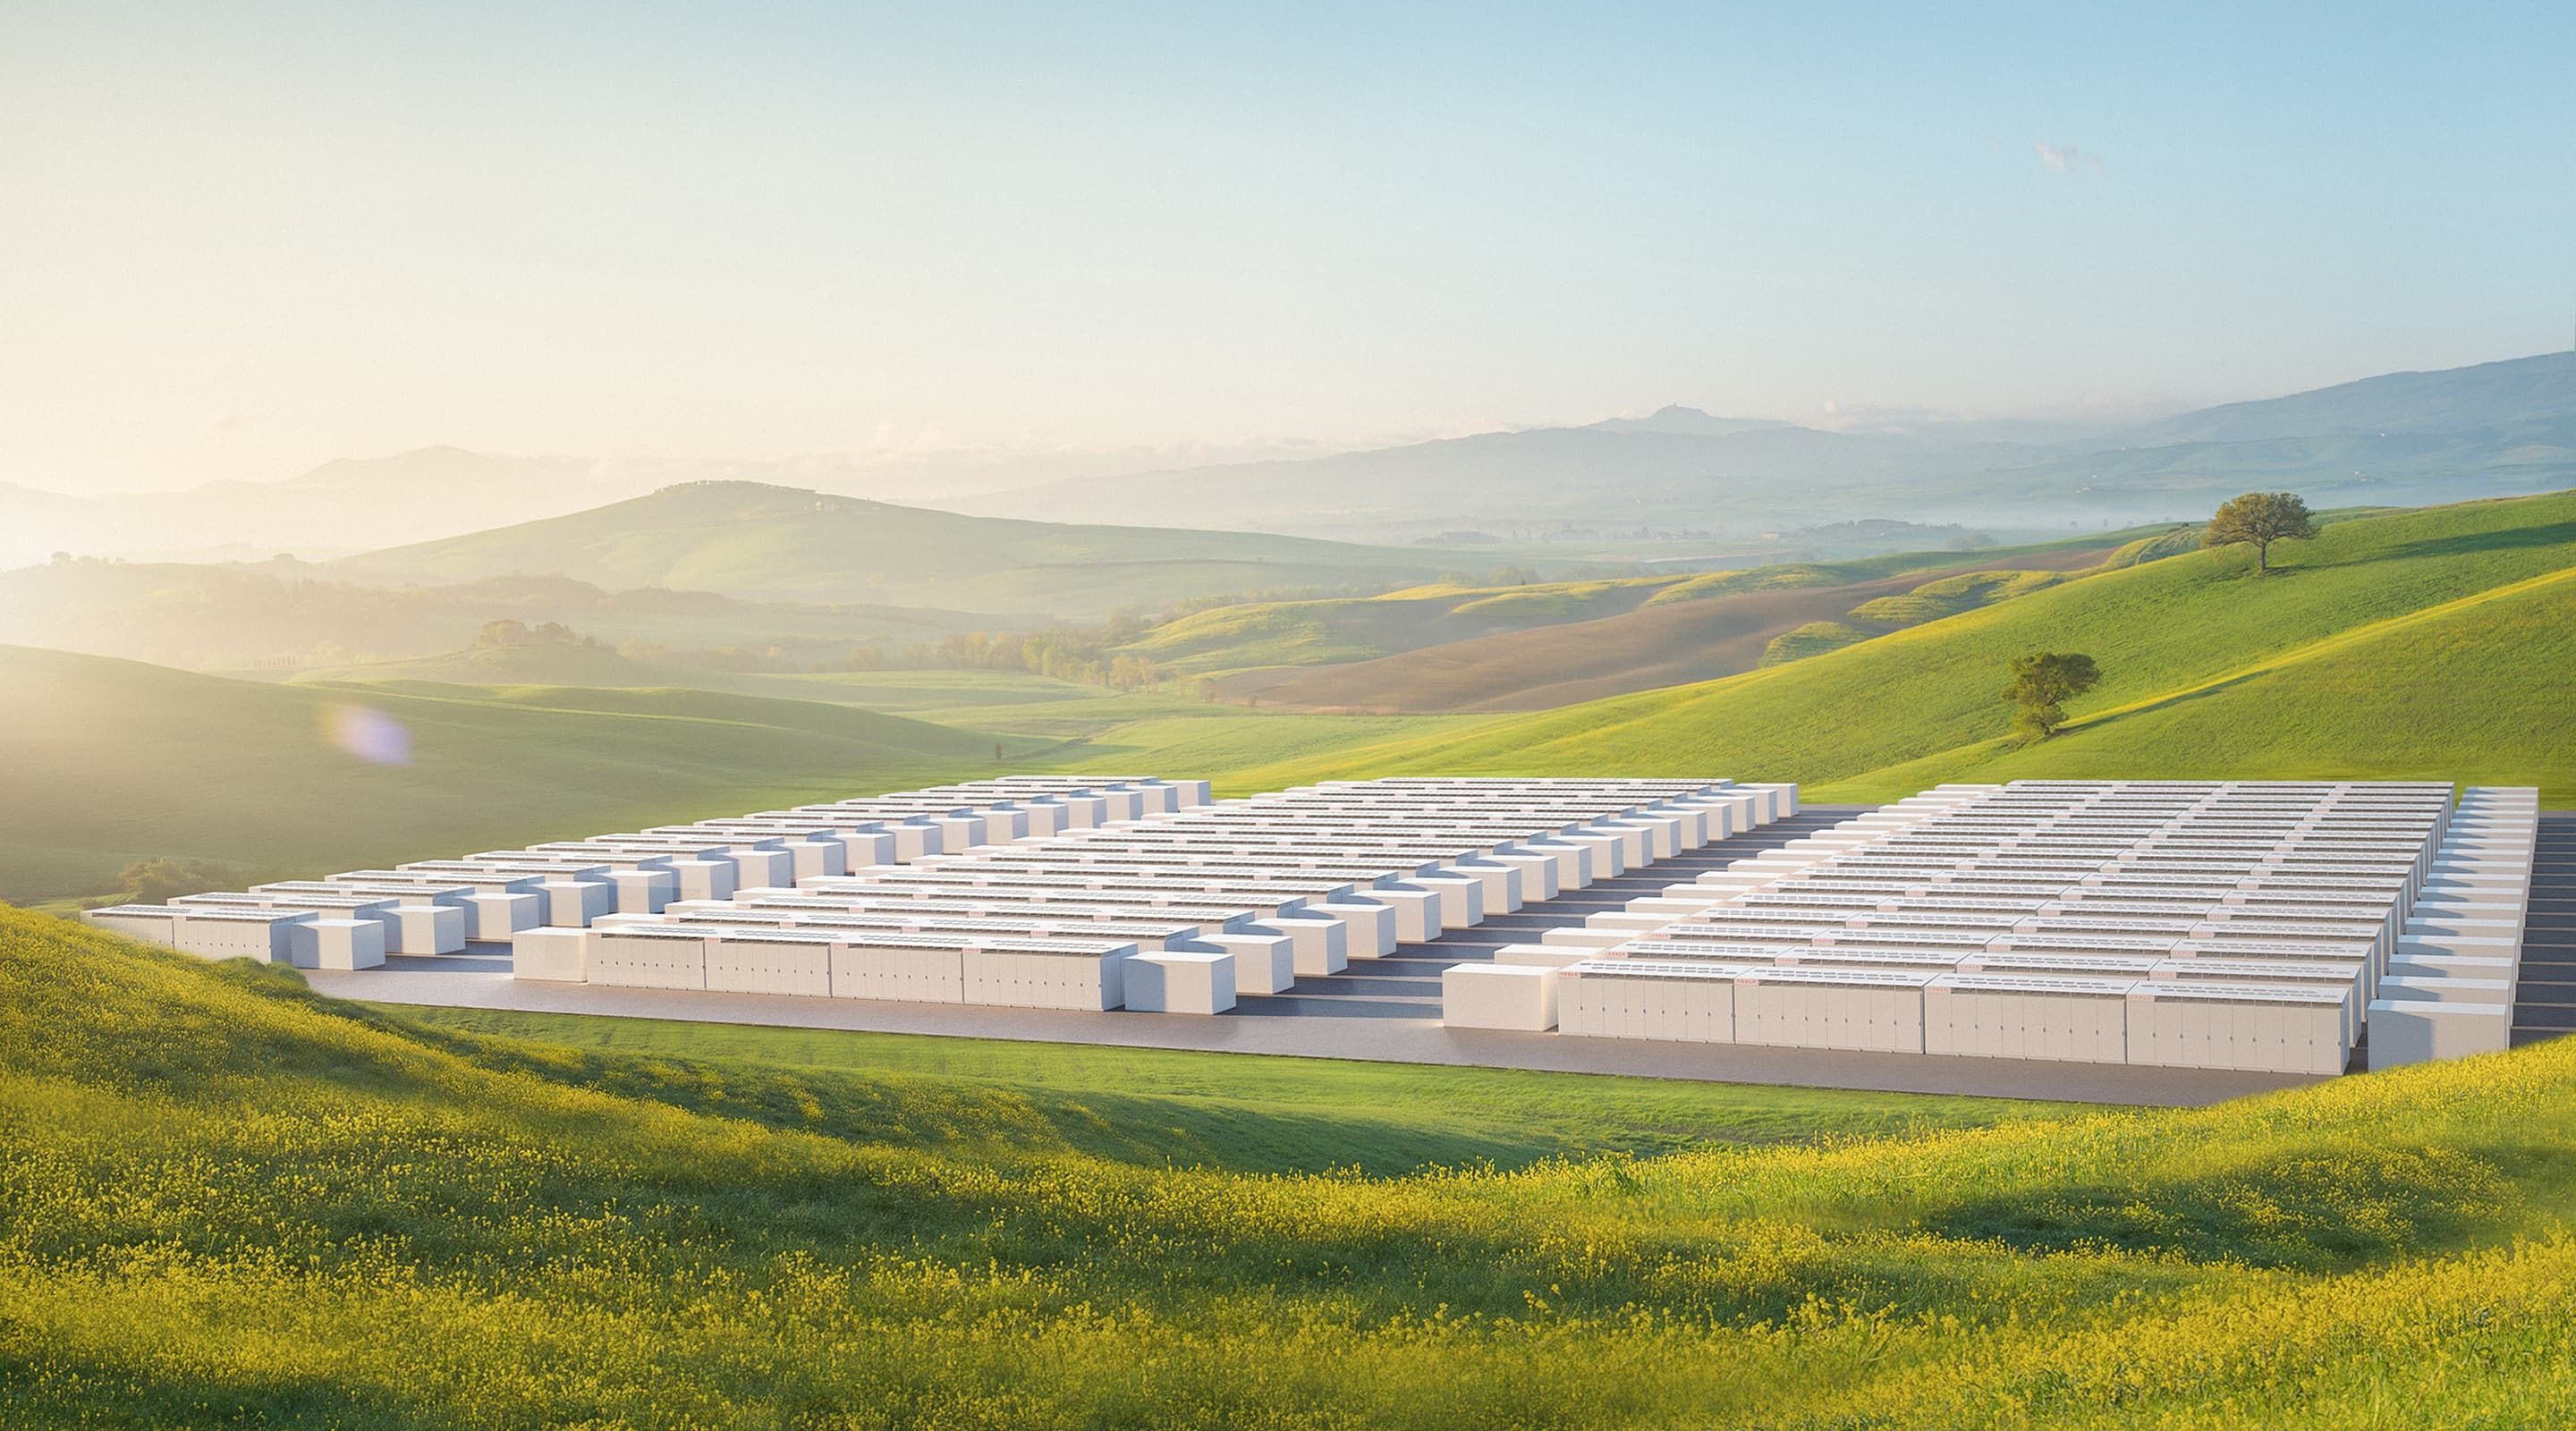 Elon Musk's Battery Farm Is an Undeniable Success